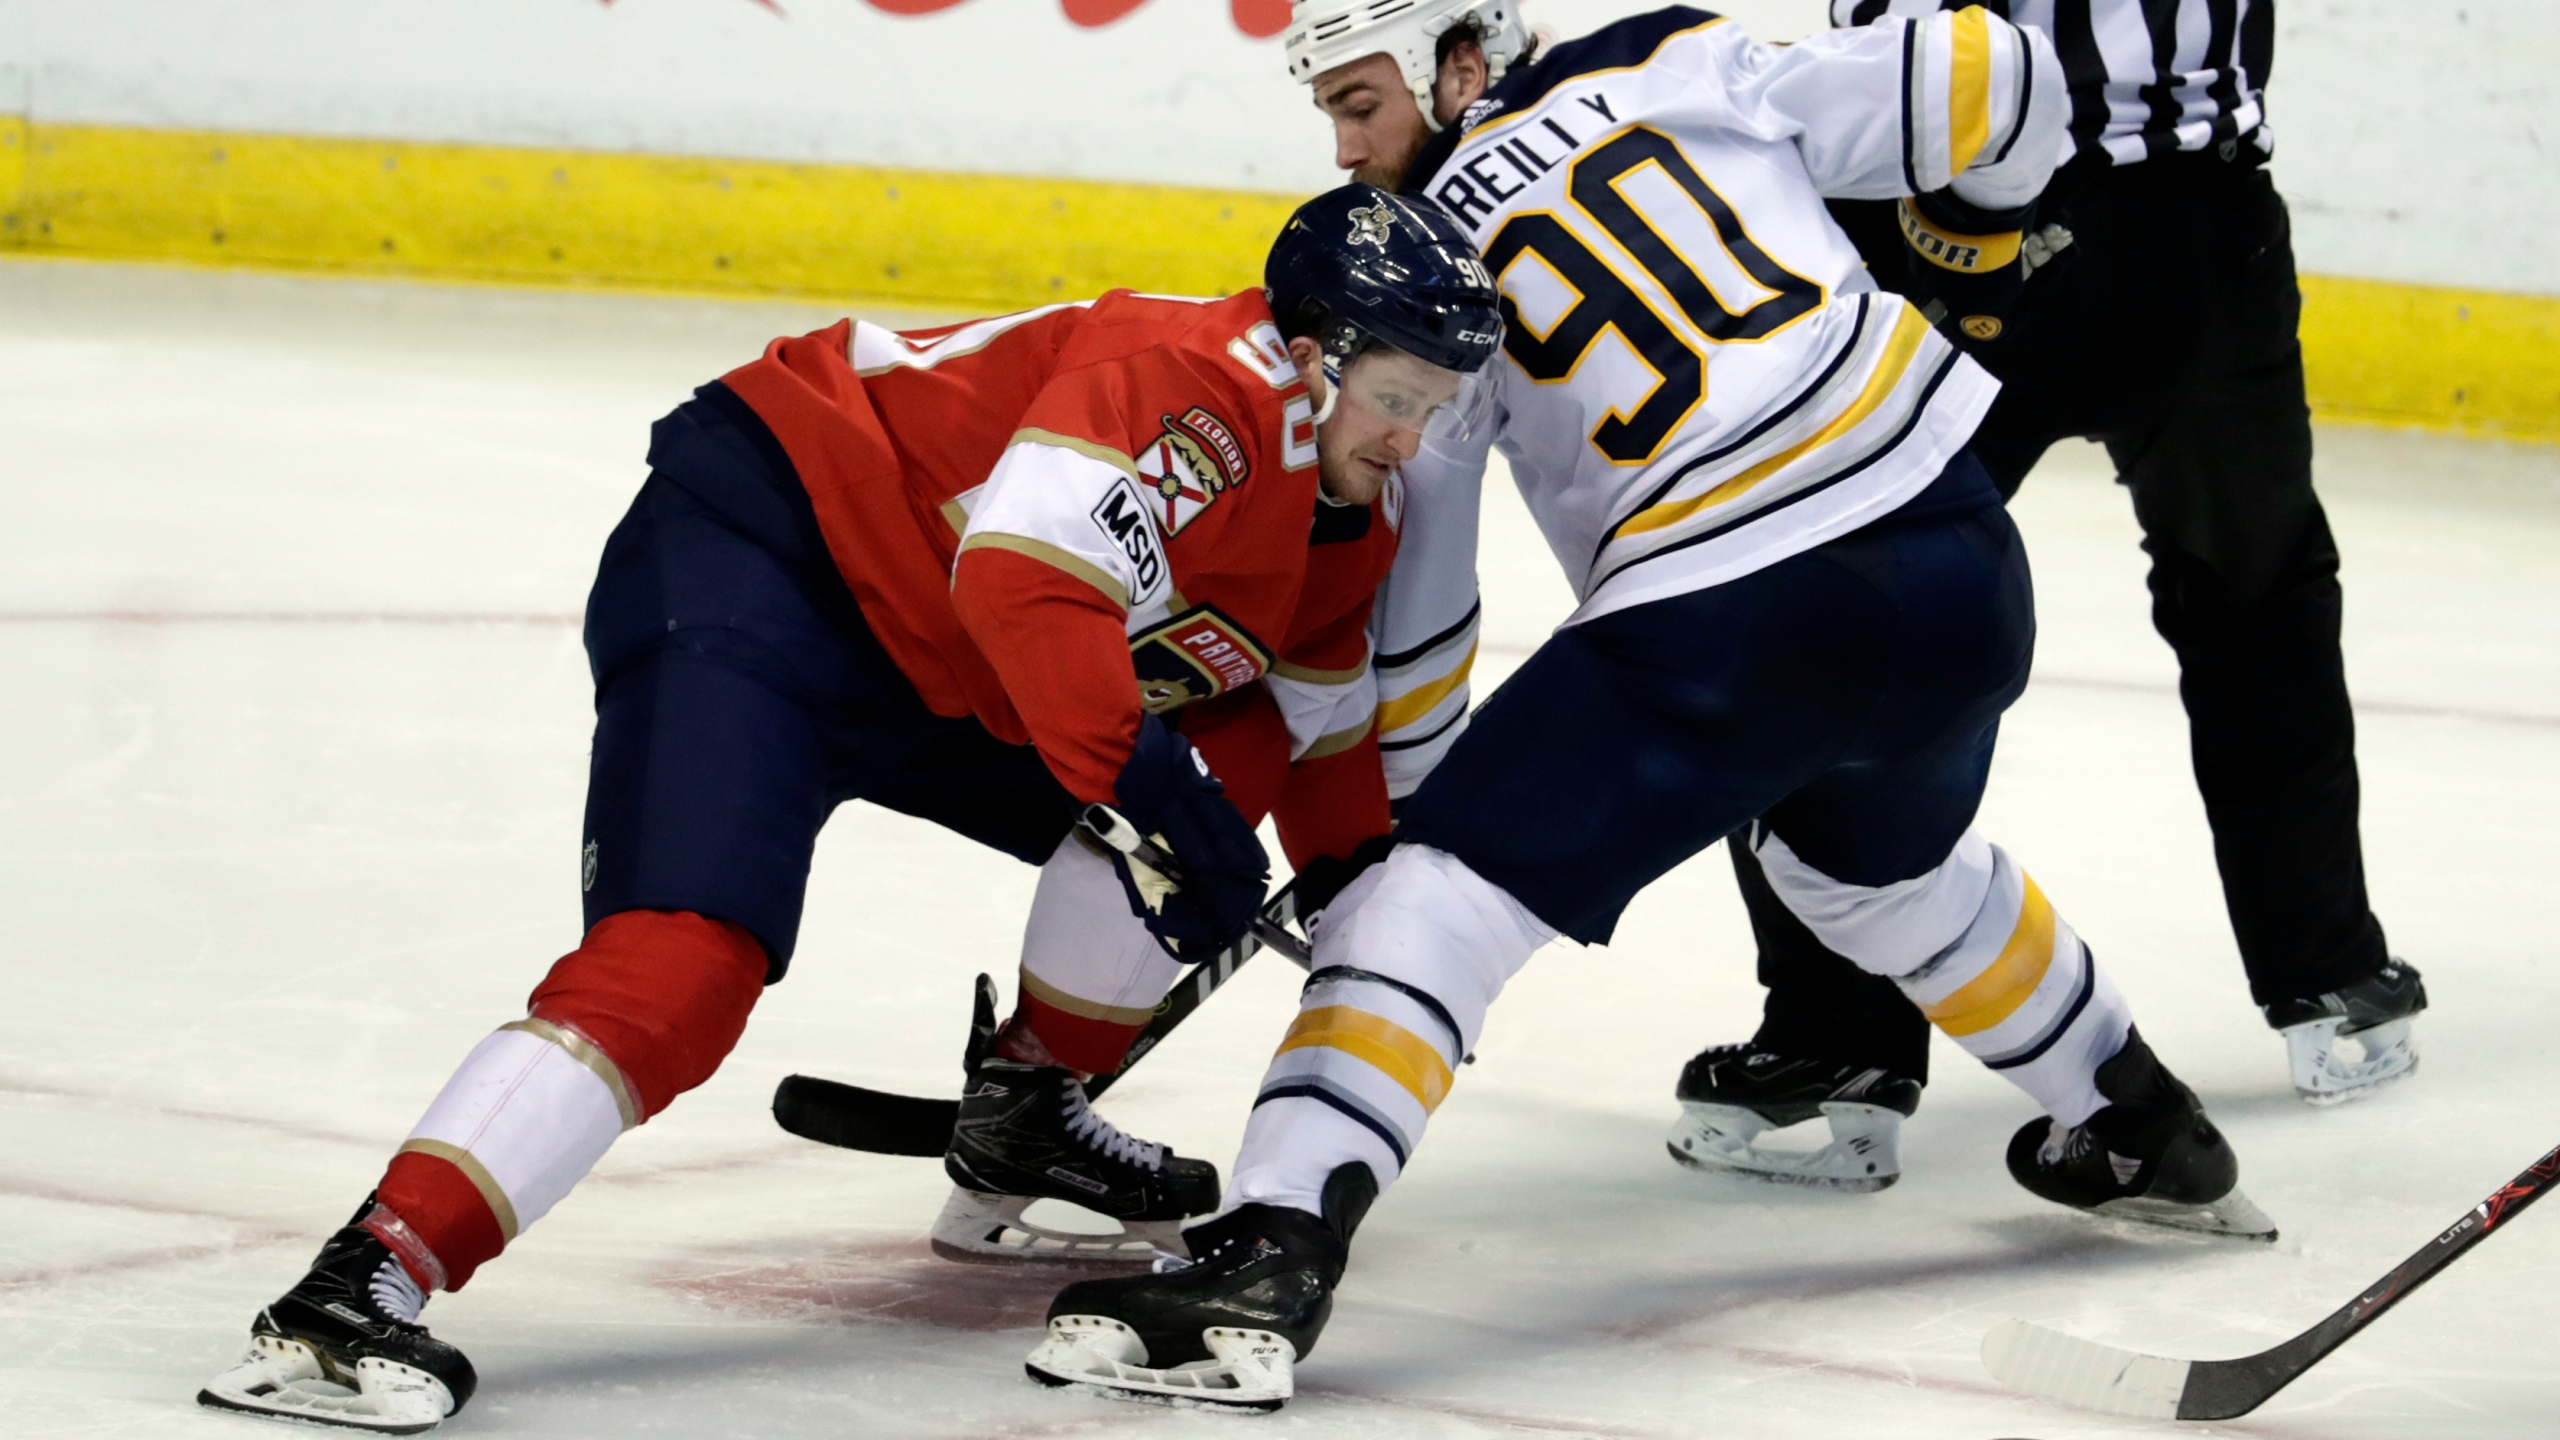 Sabres Panthers Hockey_1530492189114